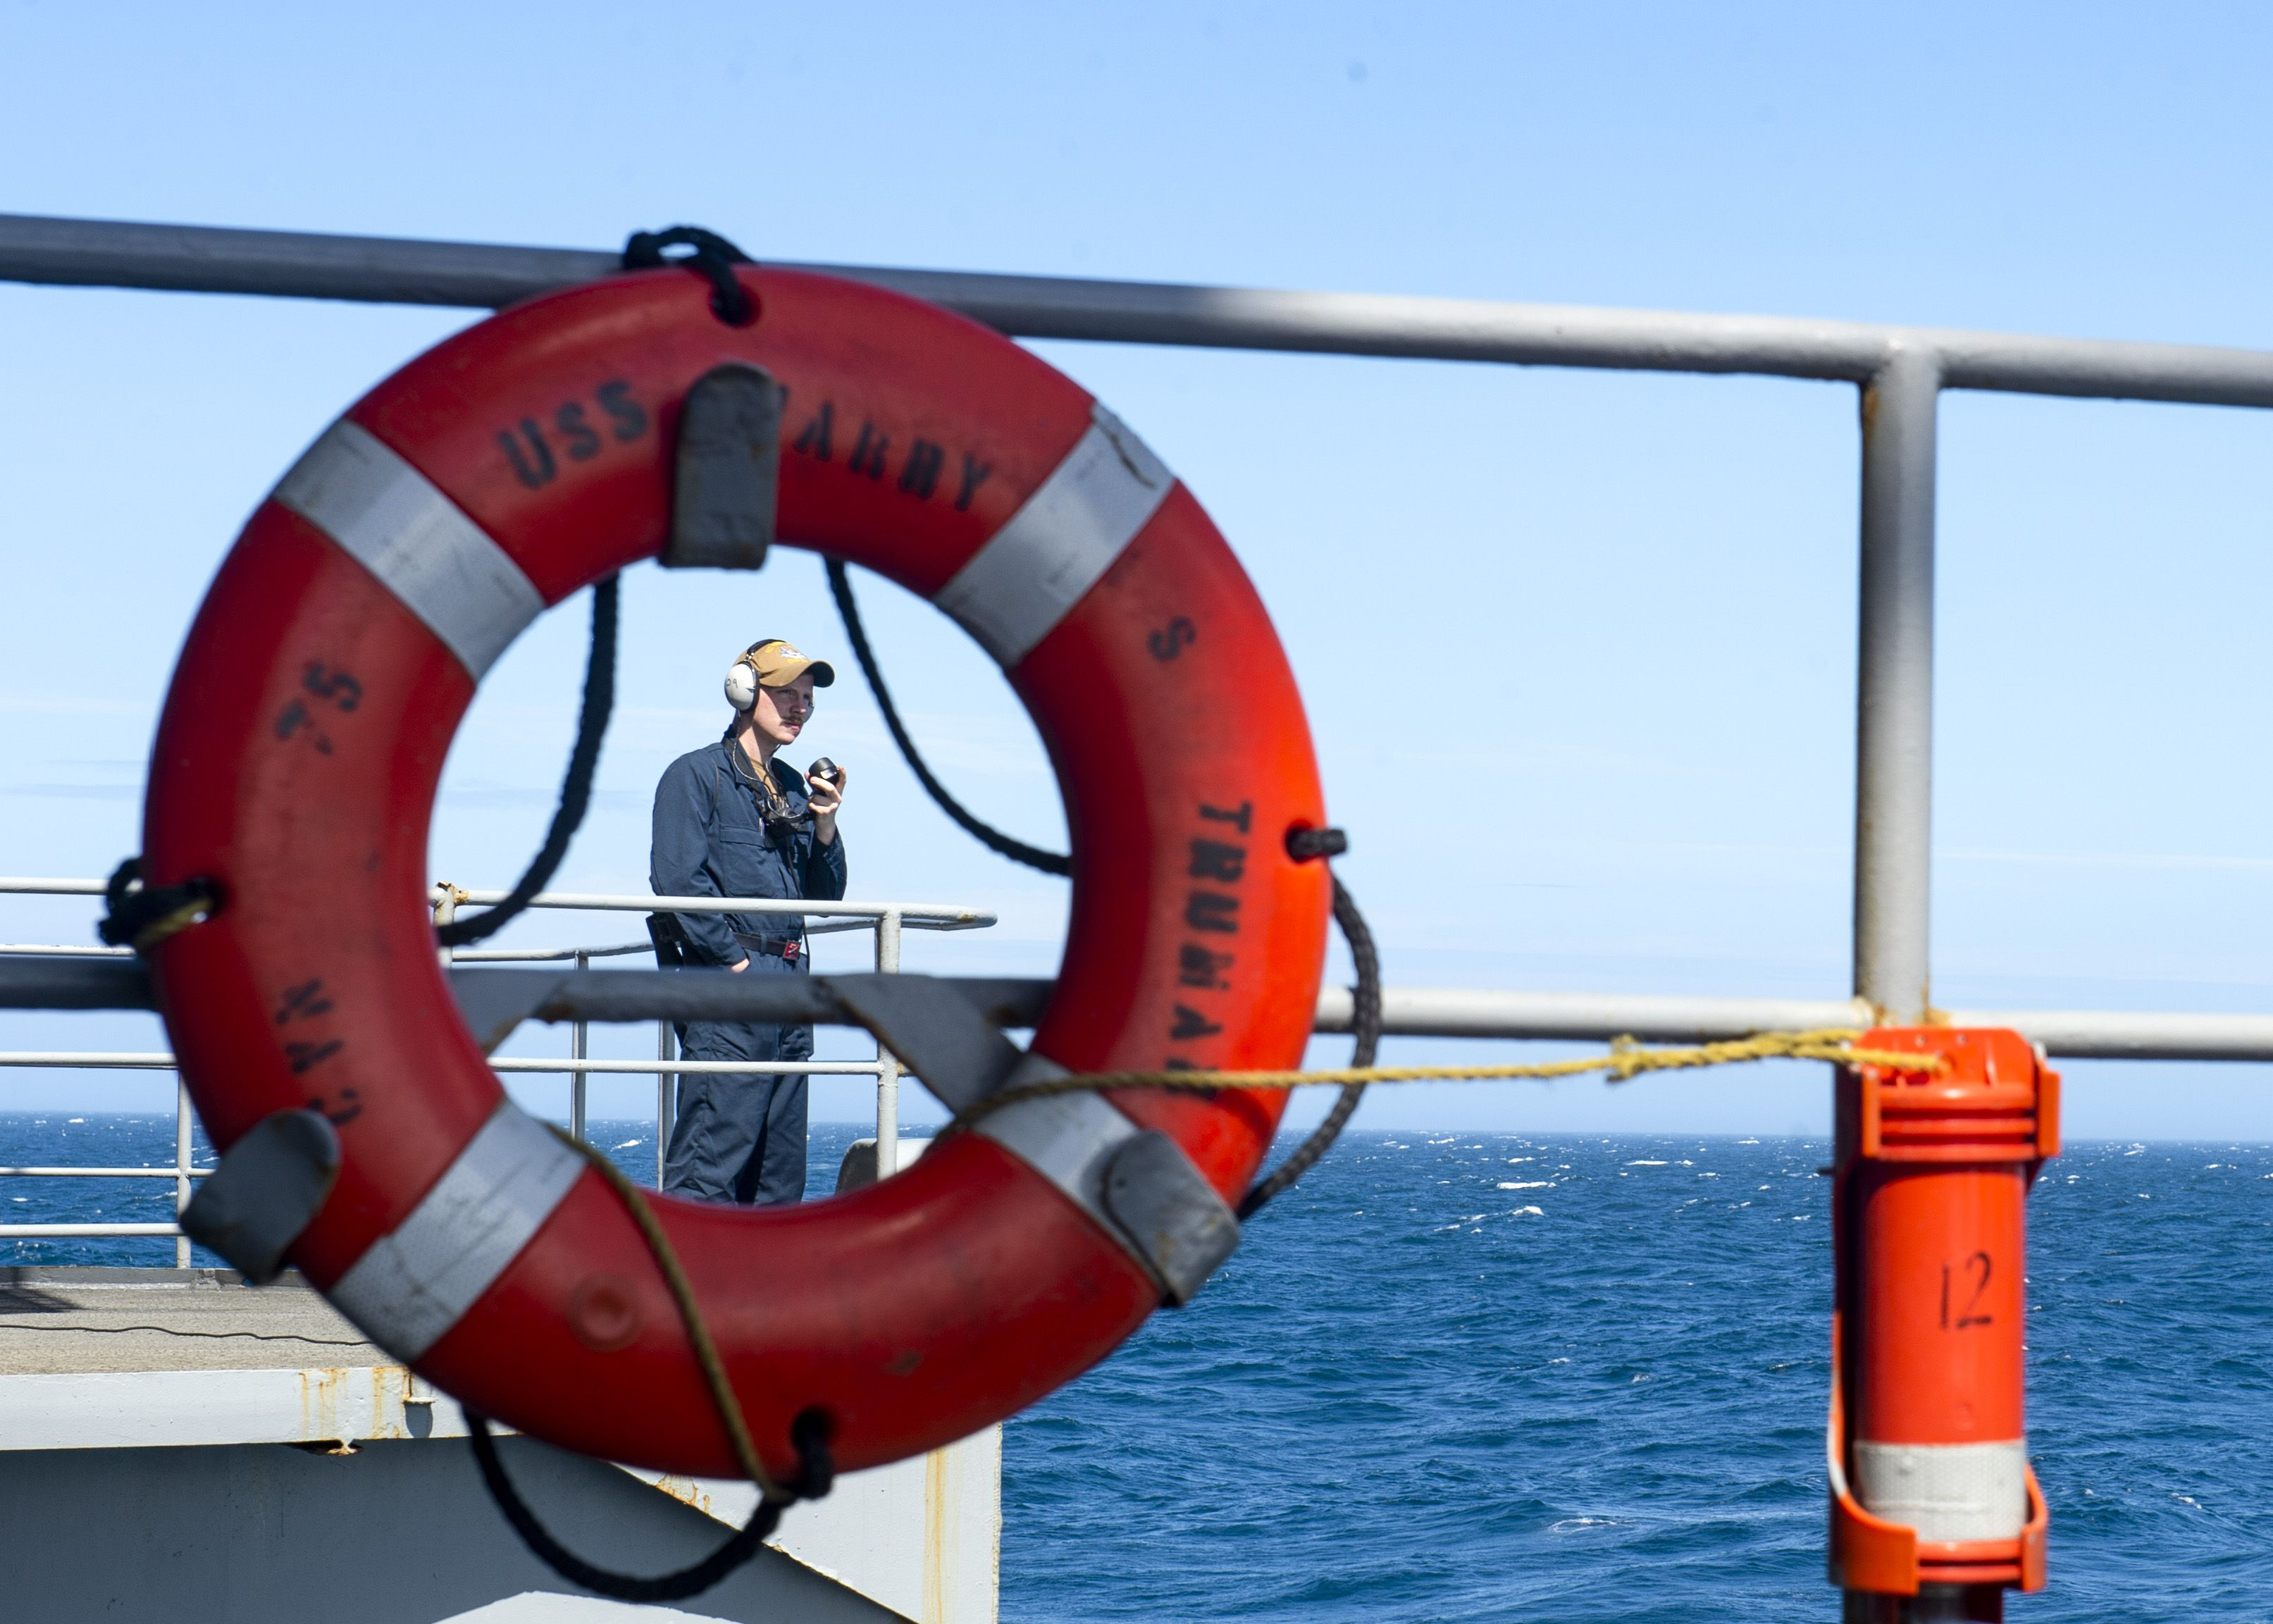 A seaman stands watch on the fantail of the nimitzclass